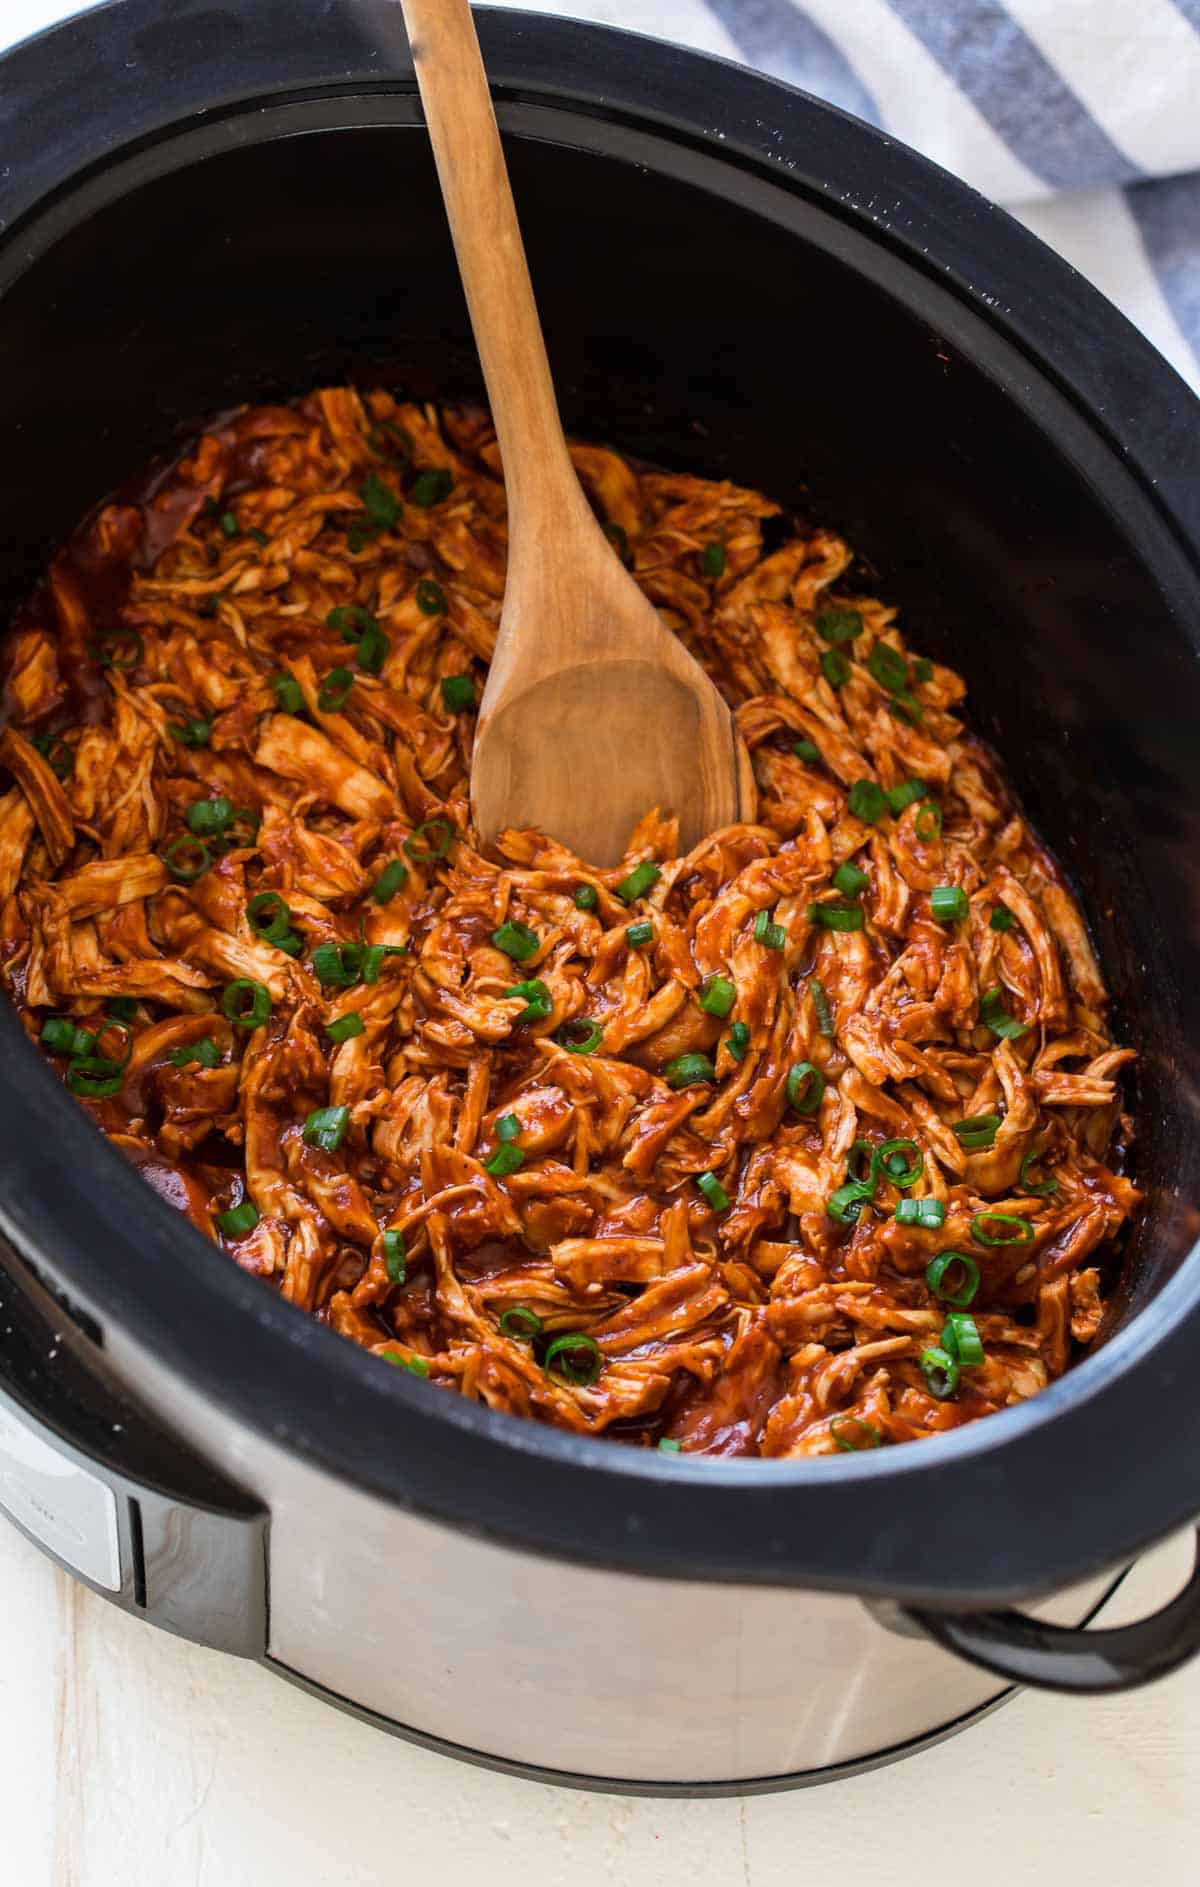 Jul 06,  · A simple recipe that shows you how to make BBQ pulled chicken (also known as Crock Pot BBQ Chicken!) at home in your slow cooker! This is a quick, easy, and so flavorful recipe that's perfect for any party, potluck, or picnic!5/5(2).